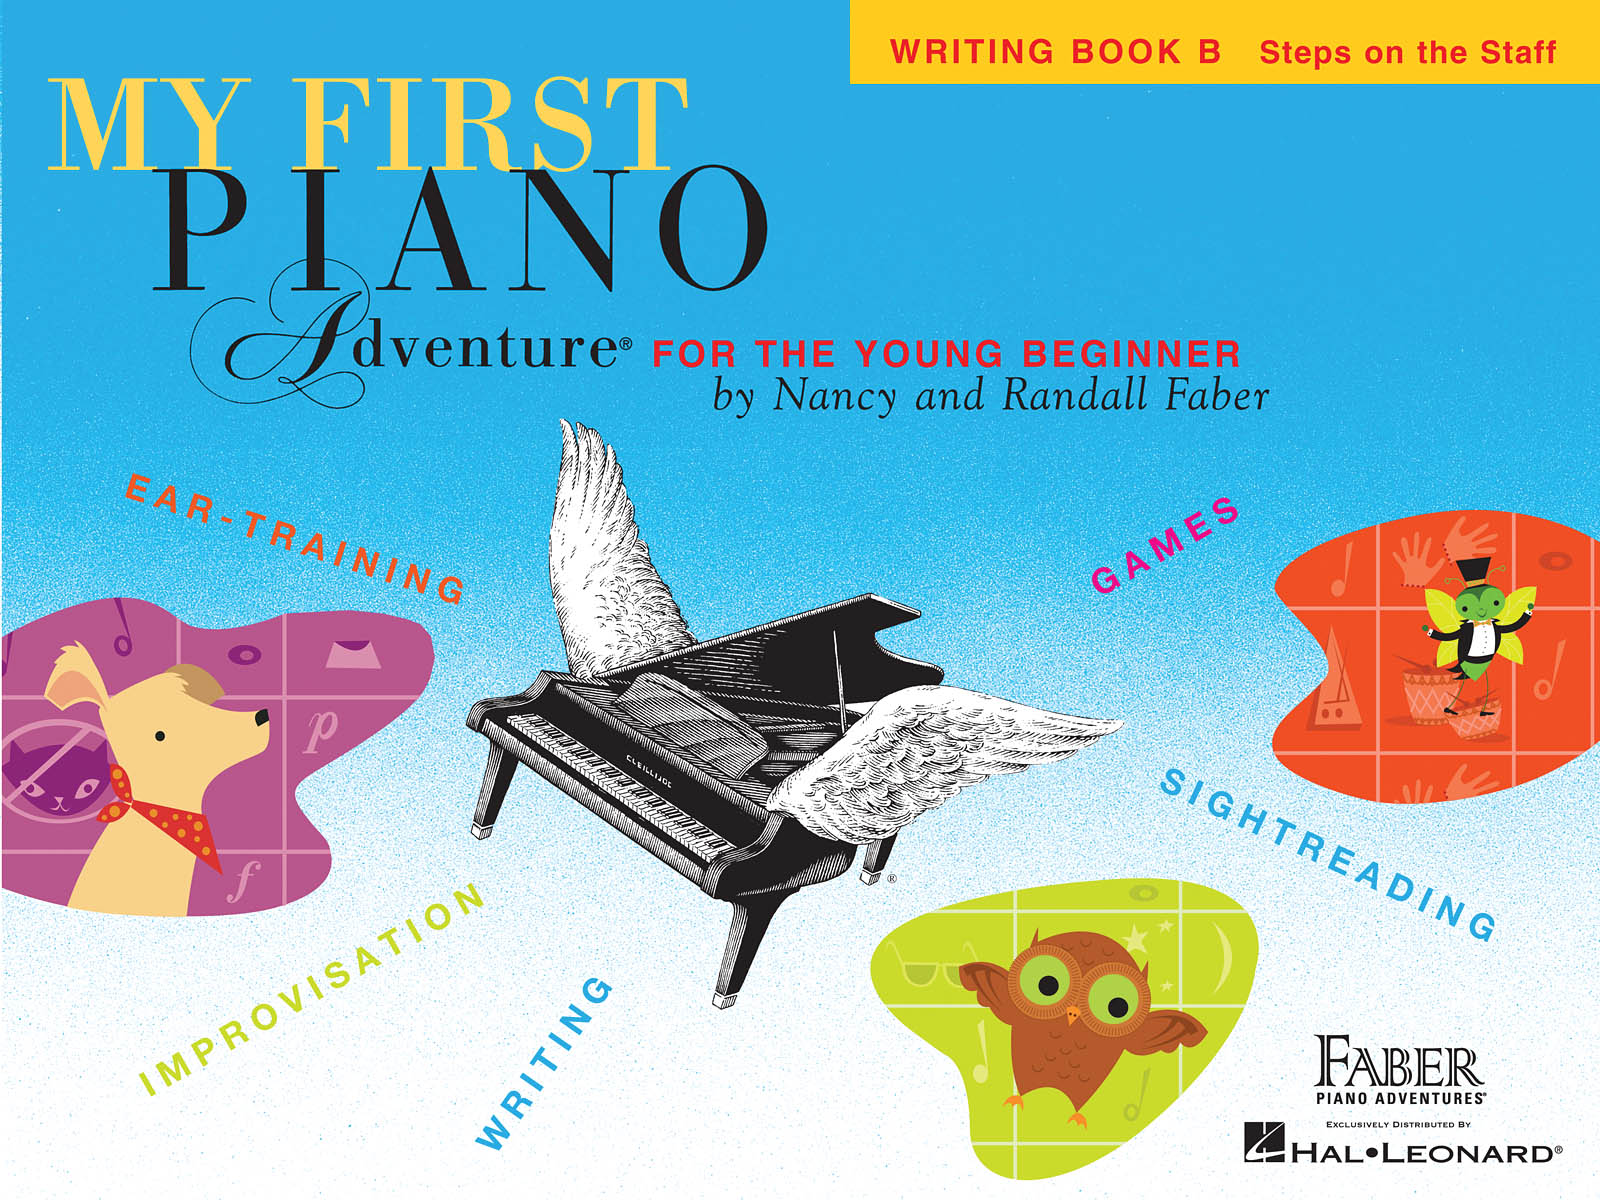 My First Piano Adventure Writing Book B, Steps on the Staff